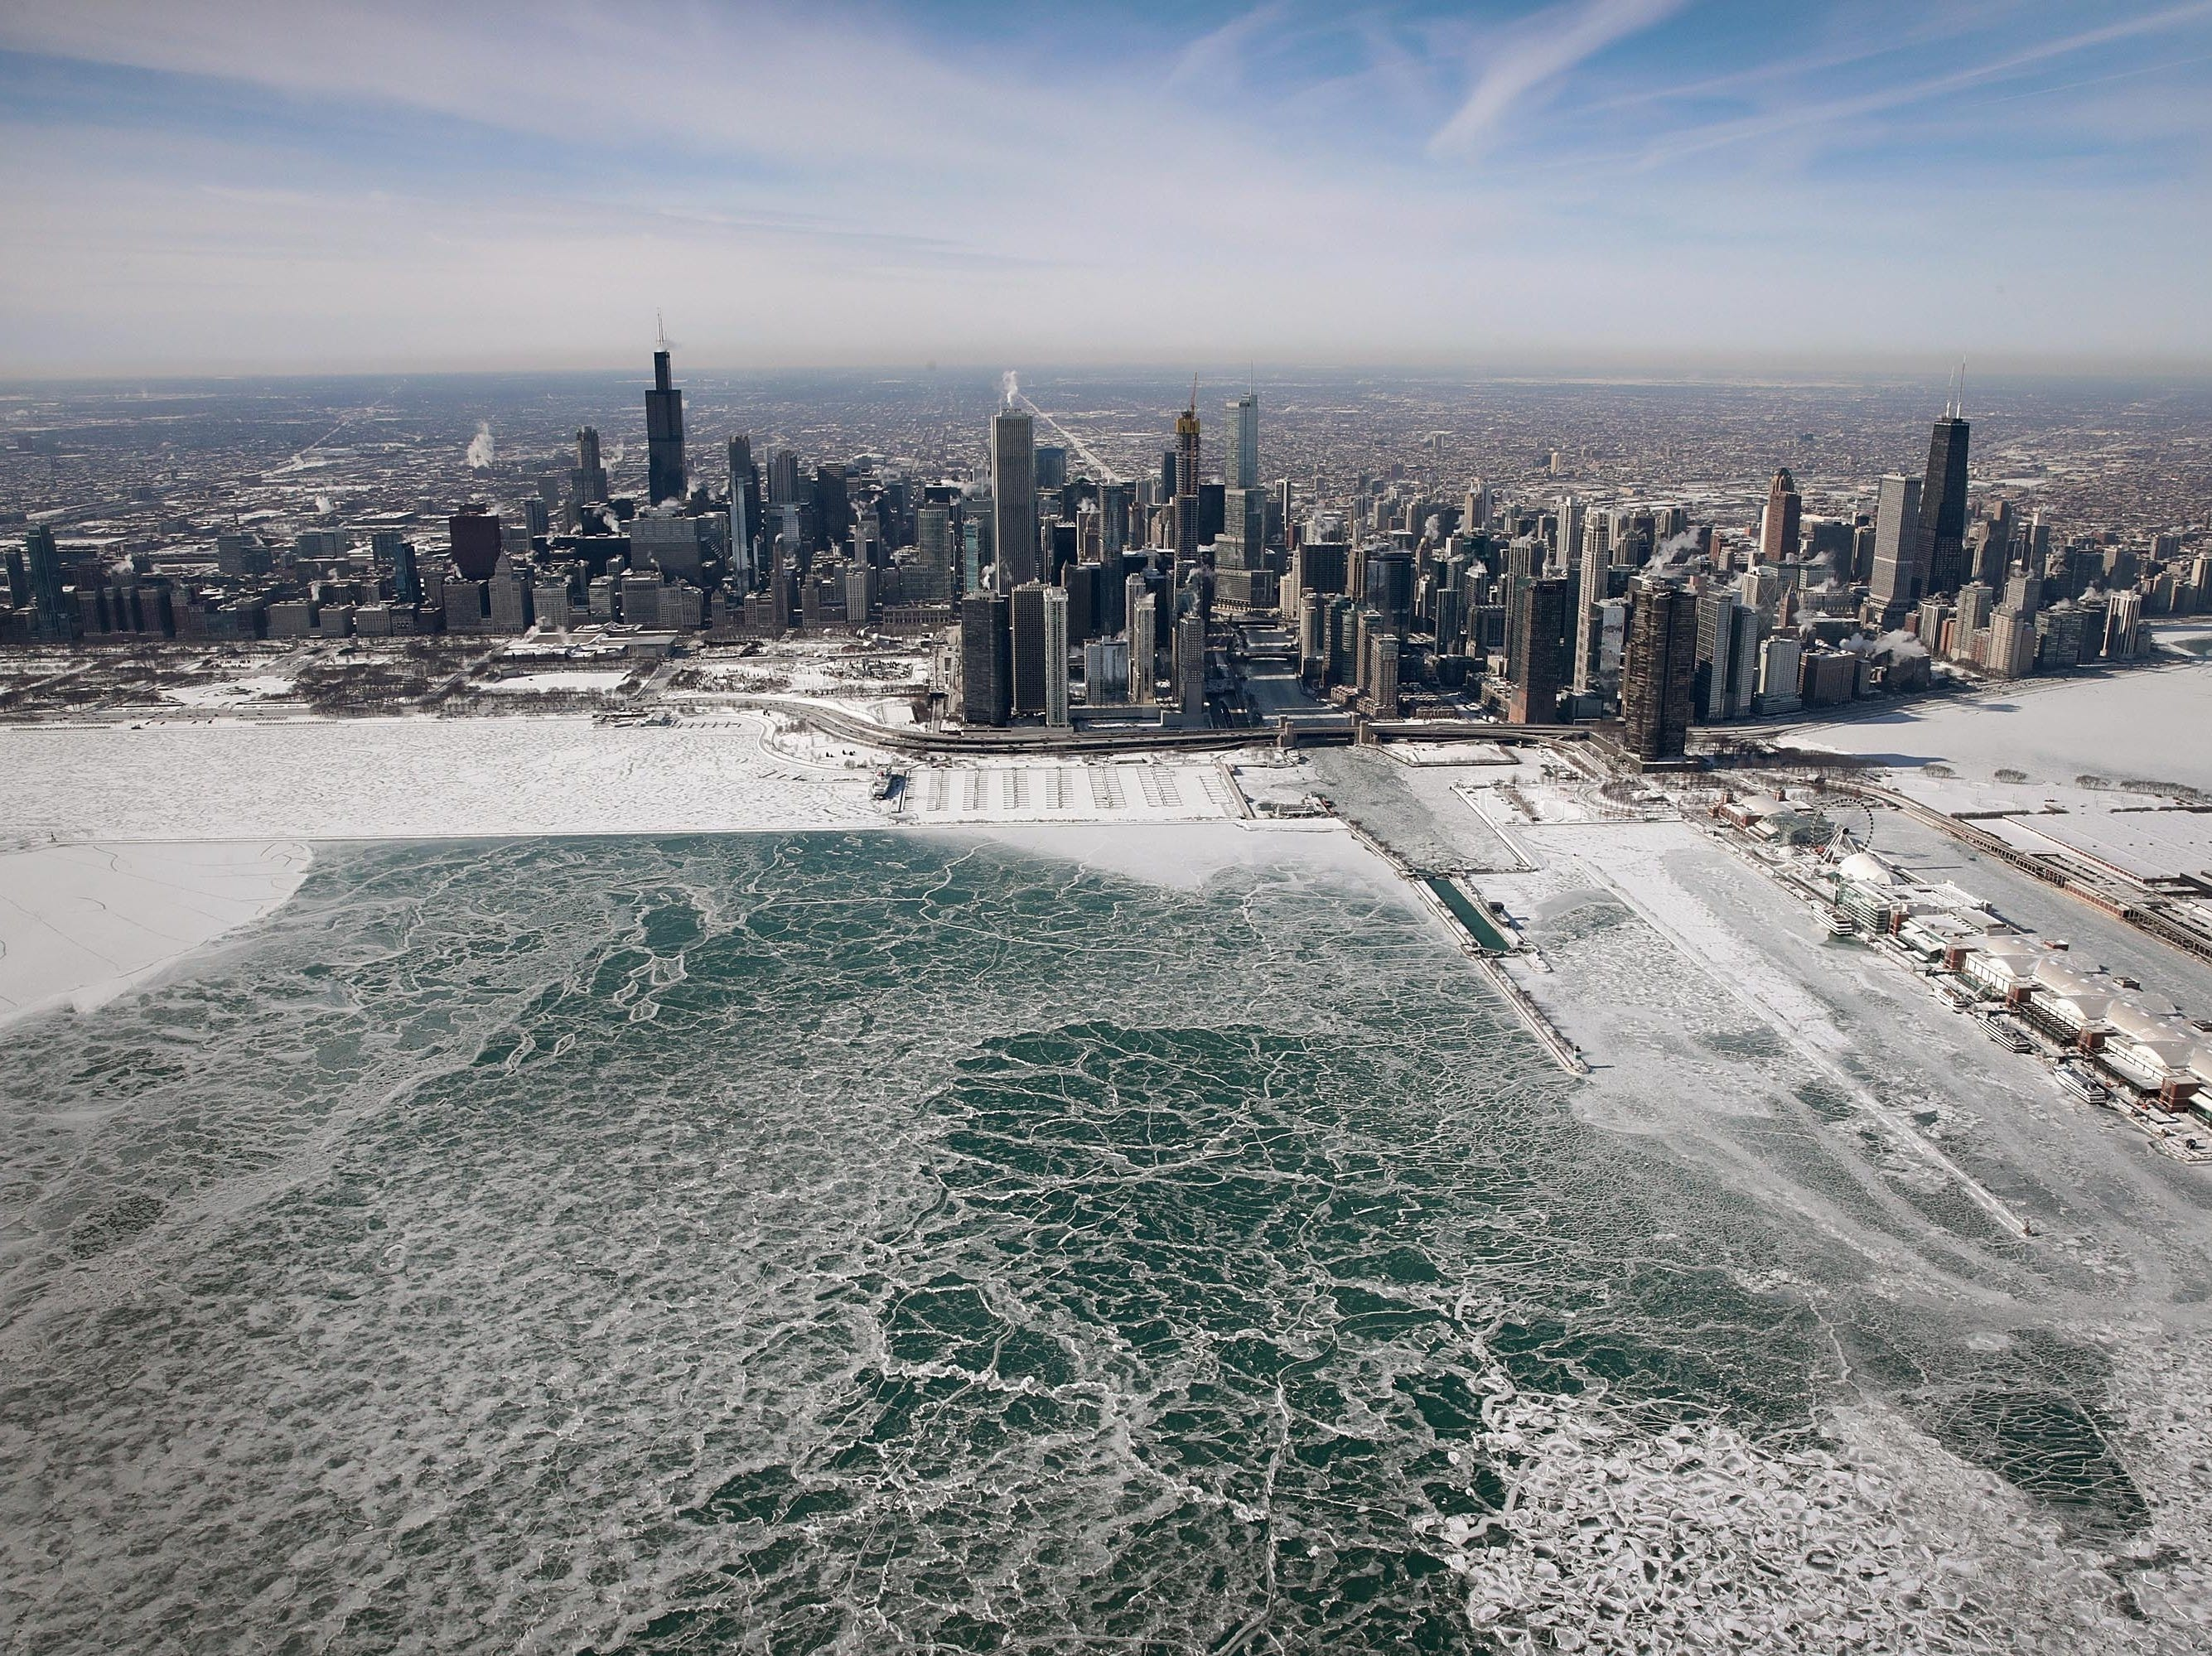 Ice builds up along the shore of Lake Michigan as temperatures during the past two days have dipped to lows around -20 degrees  on January 31, 2019, in Chicago, Illinois. Businesses and schools have closed, Amtrak has suspended service into the city, more than a thousand flights have been cancelled and mail delivery has been suspended as the city copes with record-setting low temperatures.